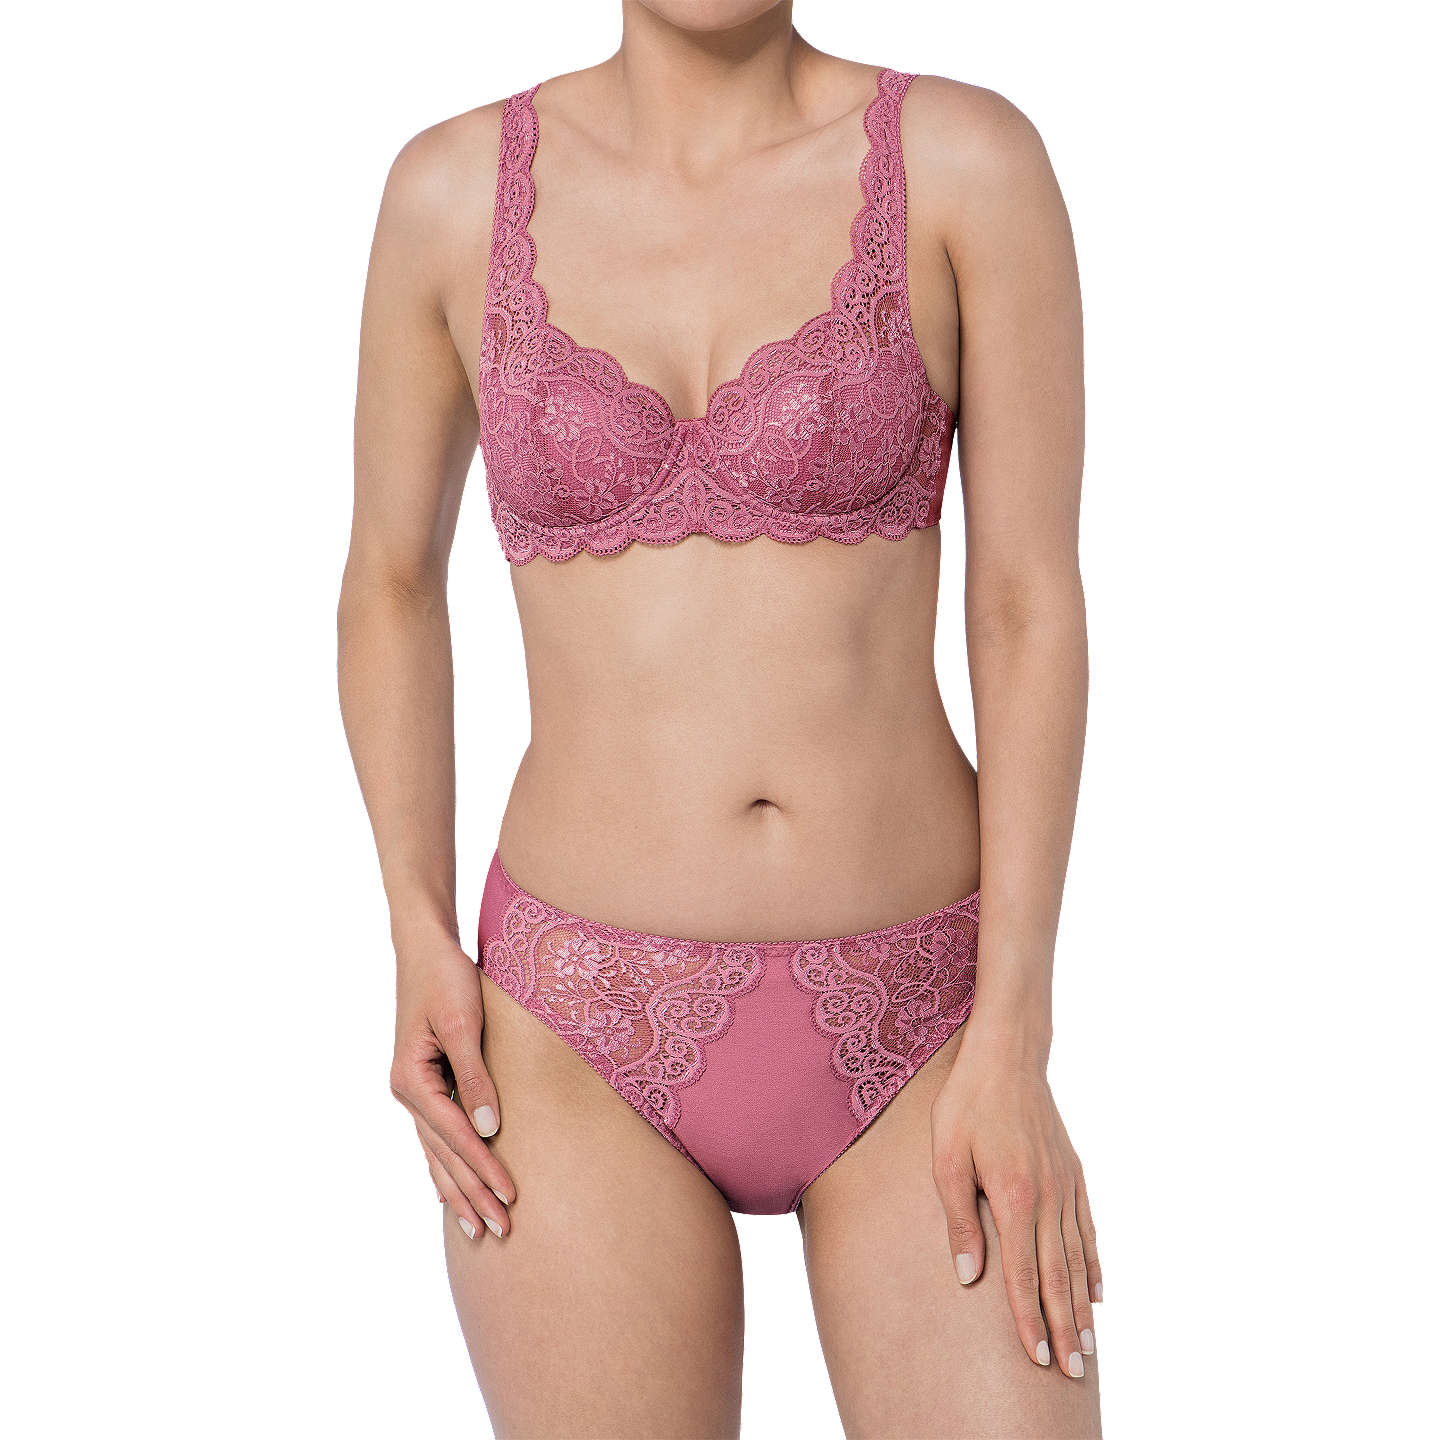 BuyTriumph Amourette 300 Underwired Balcony Bra, Rose, 32B Online at johnlewis.com